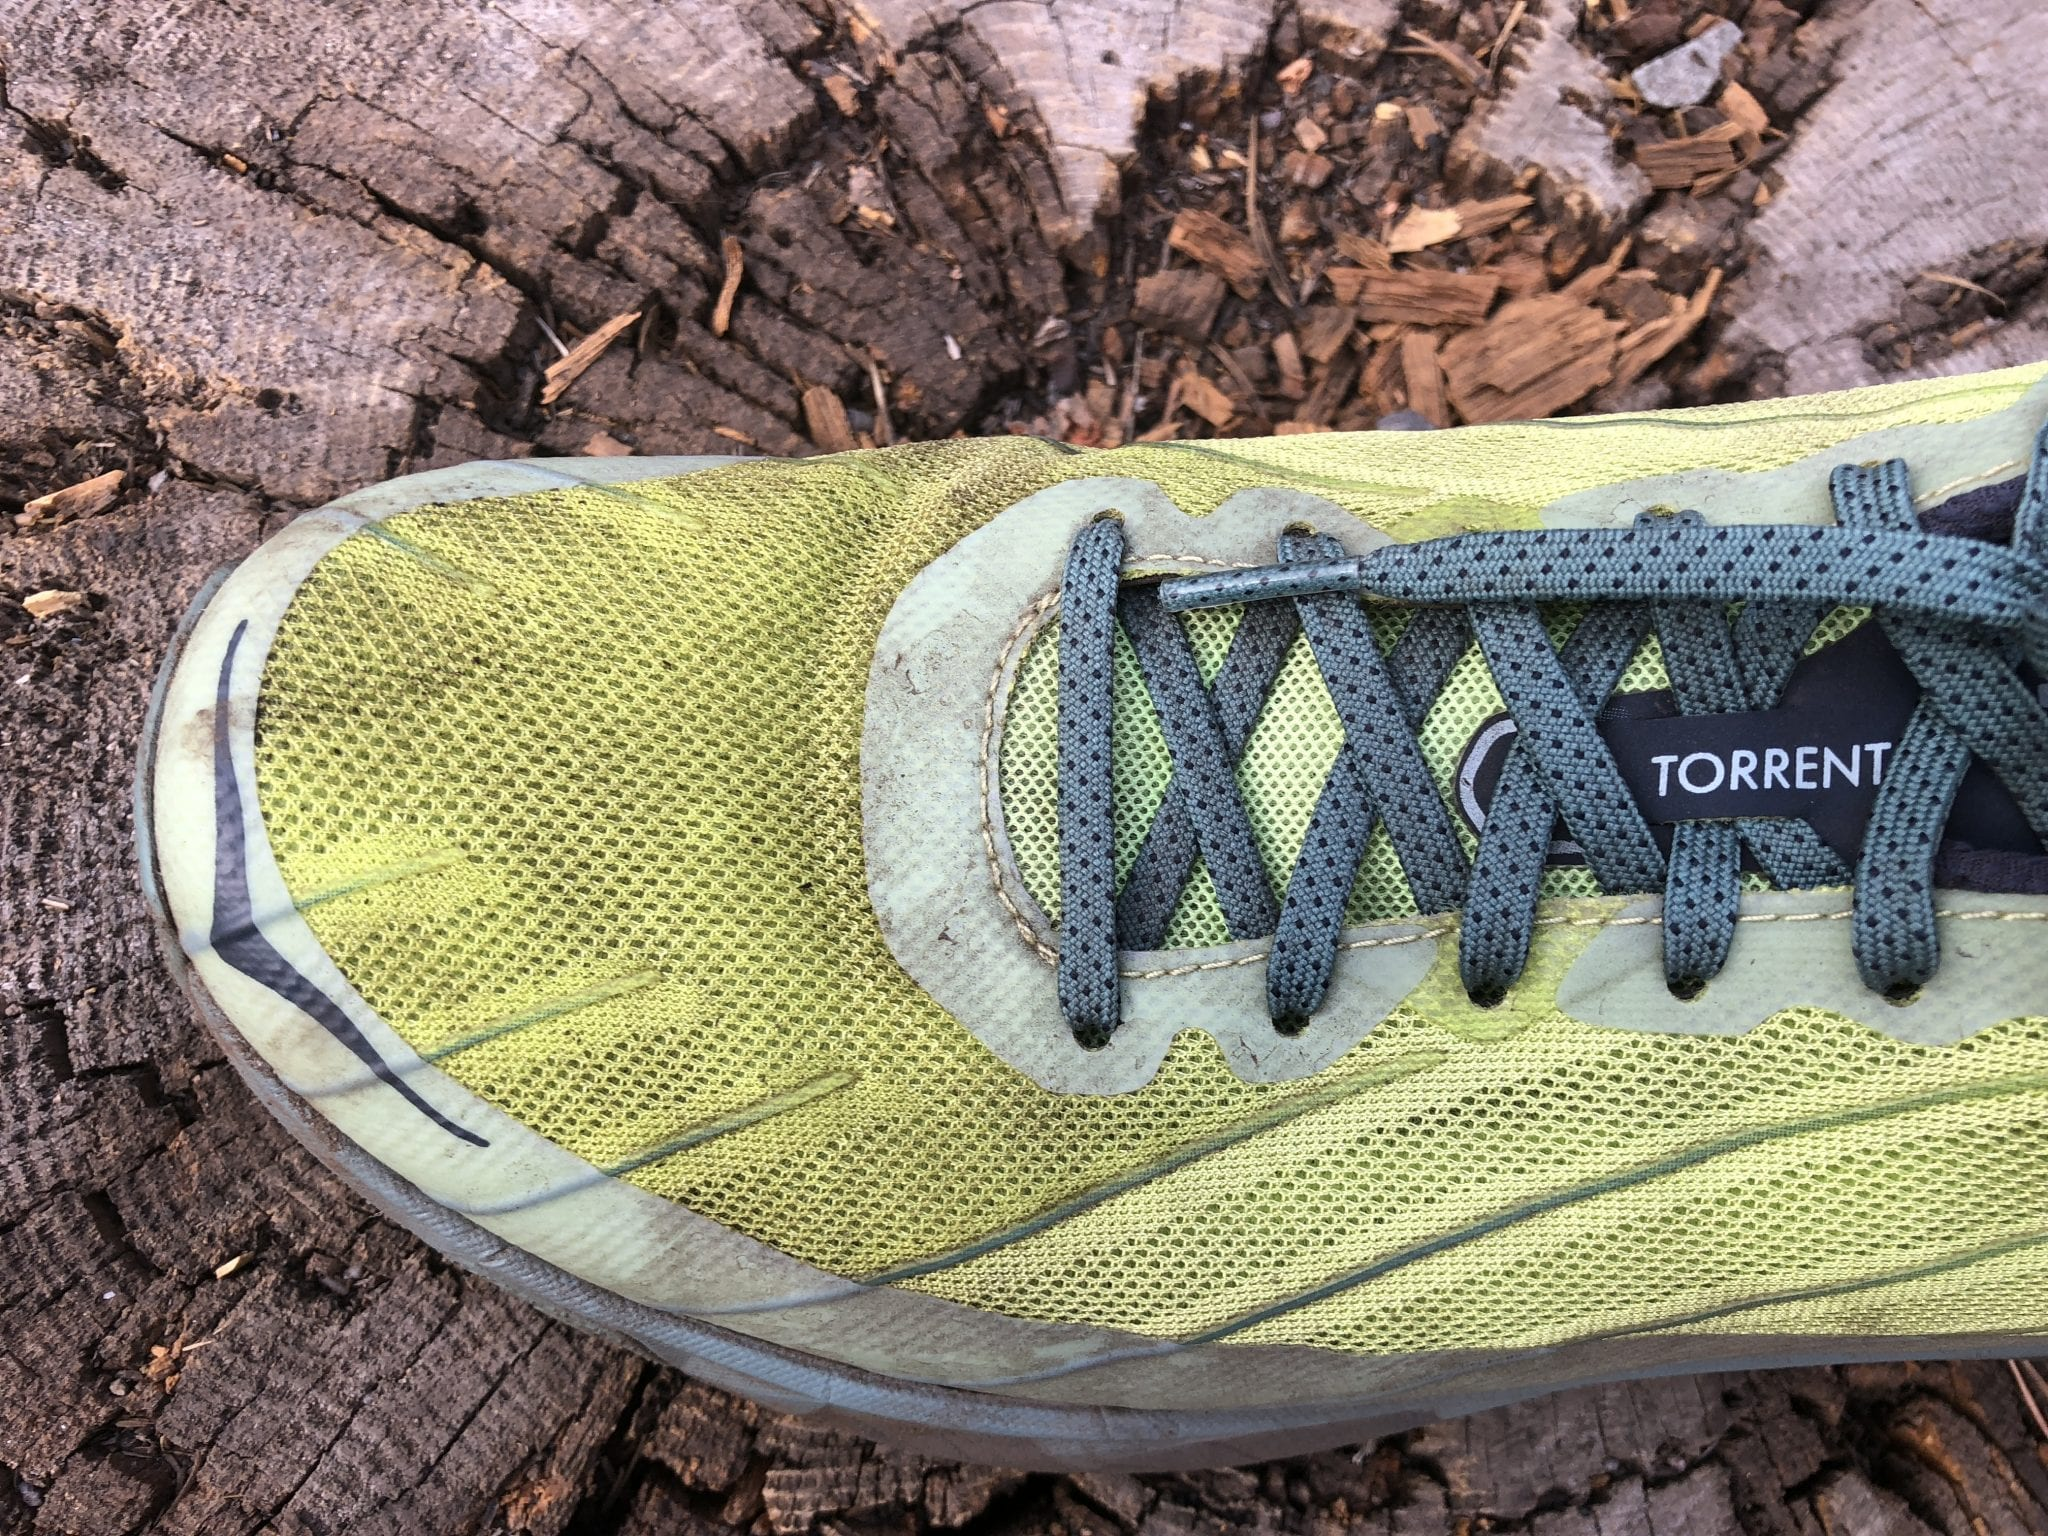 HokaOneOne Torrent 6